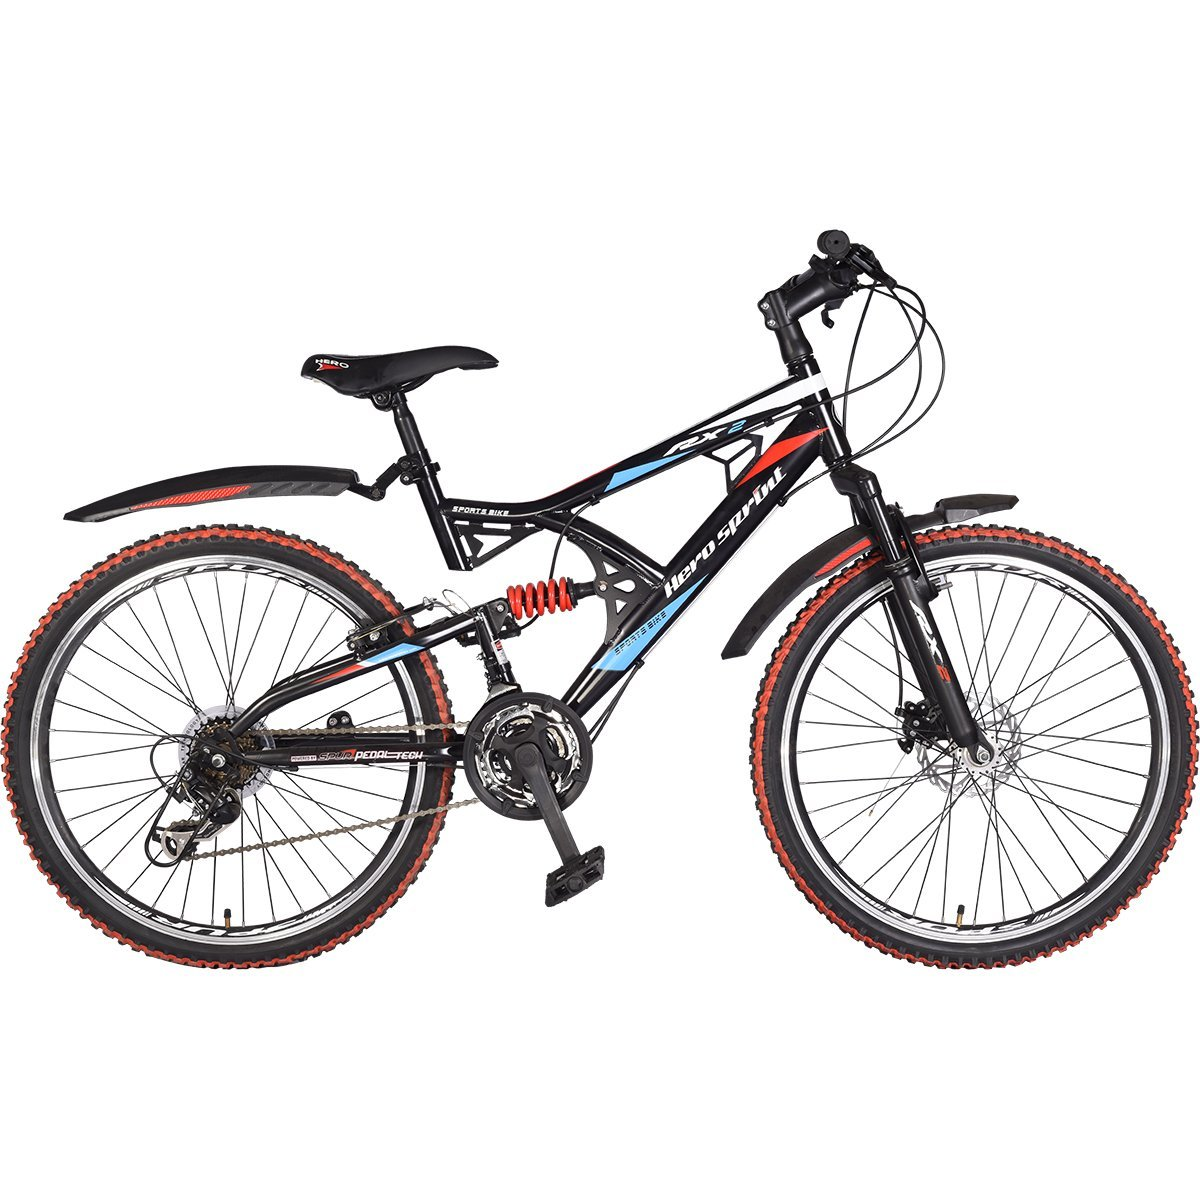 Hero RX2 26T Black & Red 21 Speed Sprint Bicycle with Disc